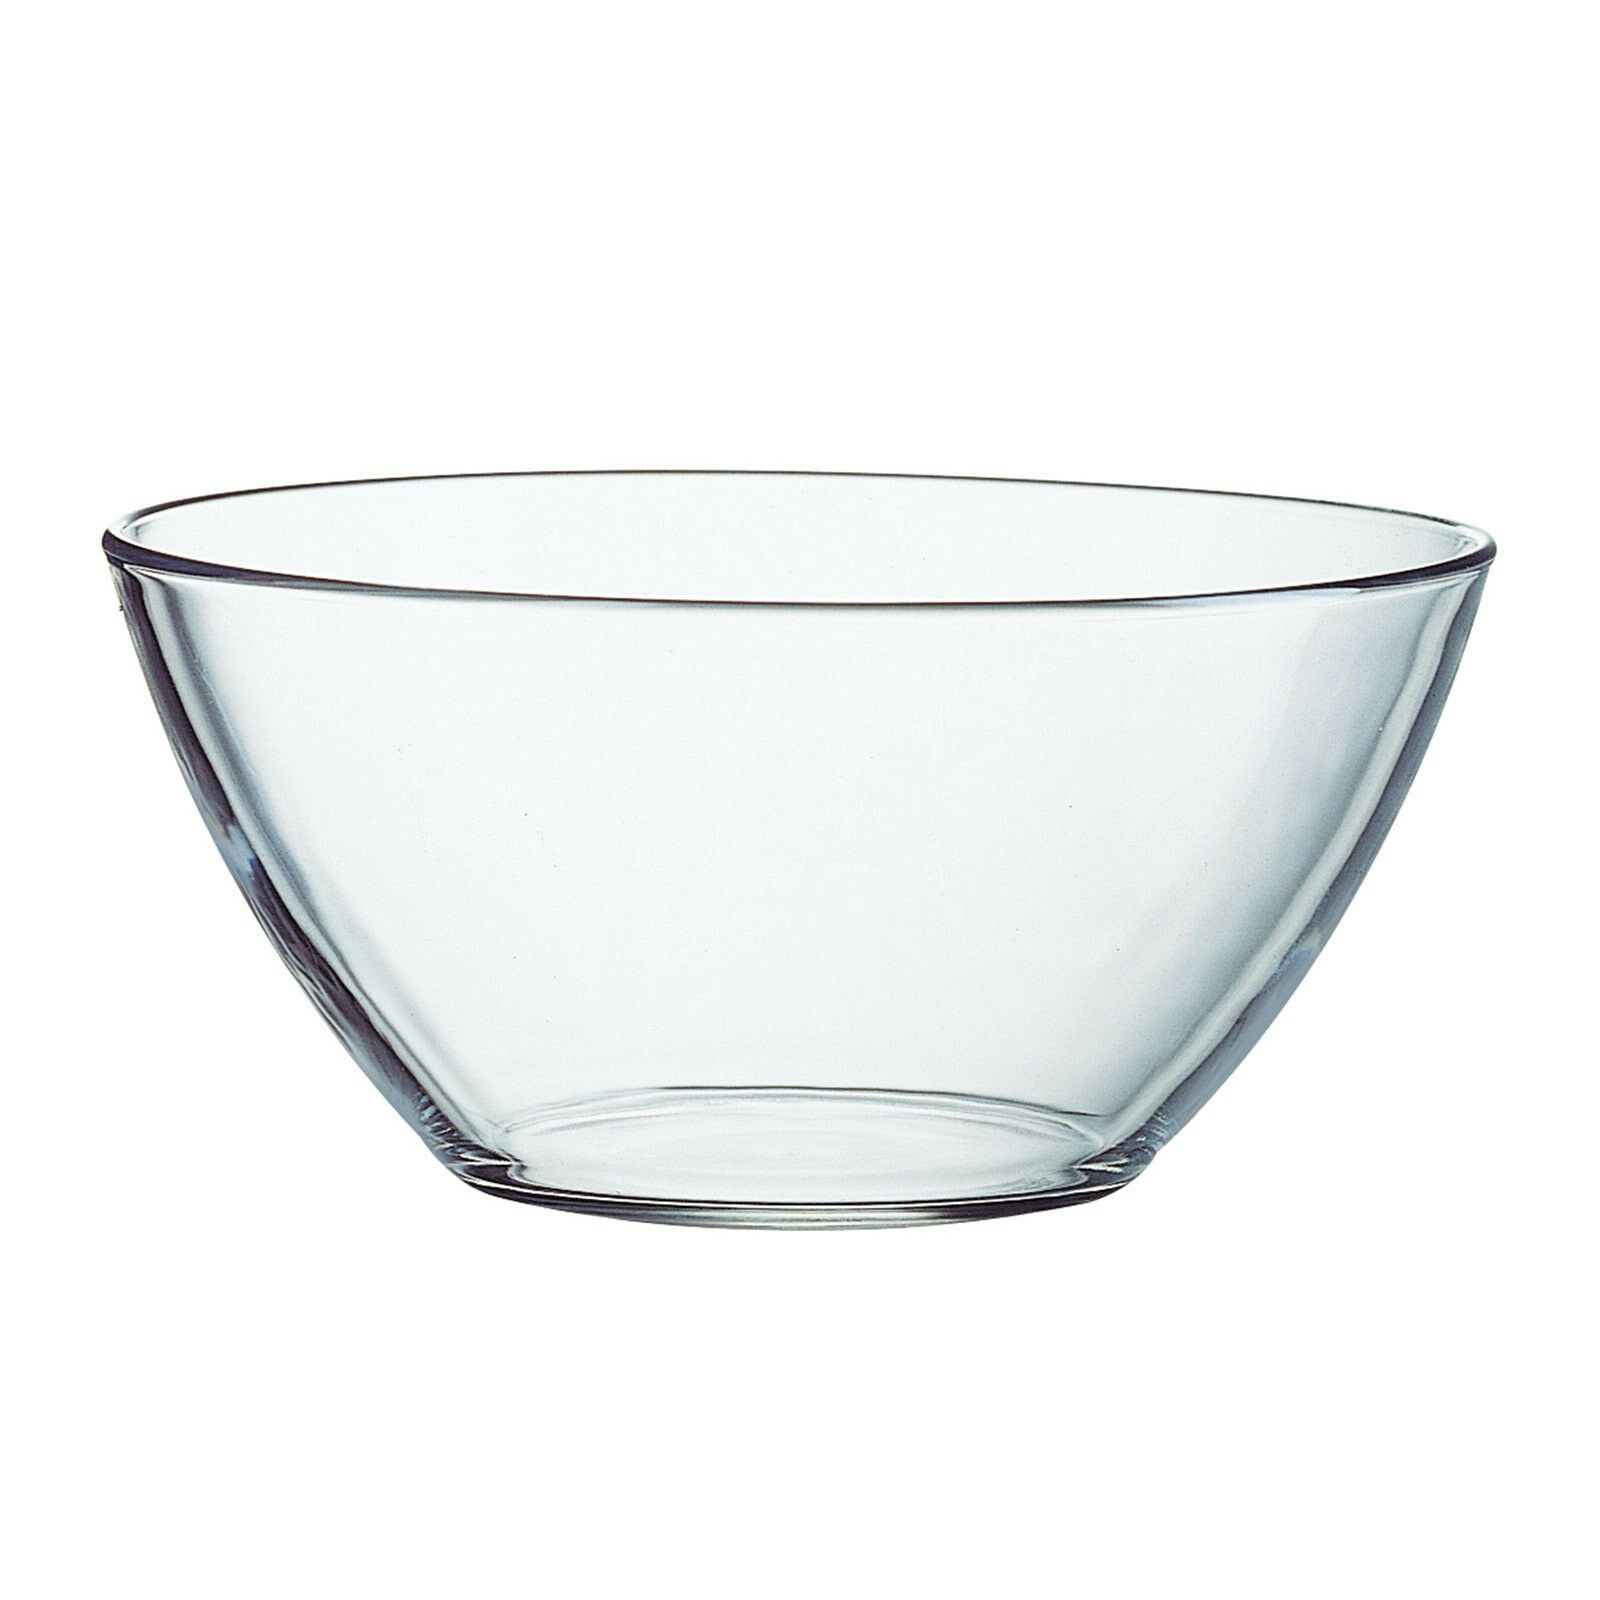 Children S Furniture Home Supplies Large Lead Free Crystal Glass Fruit Bowl Trifle Bowl Footed Serving Dish Gift Home Furniture Diy Omnitel Com Na